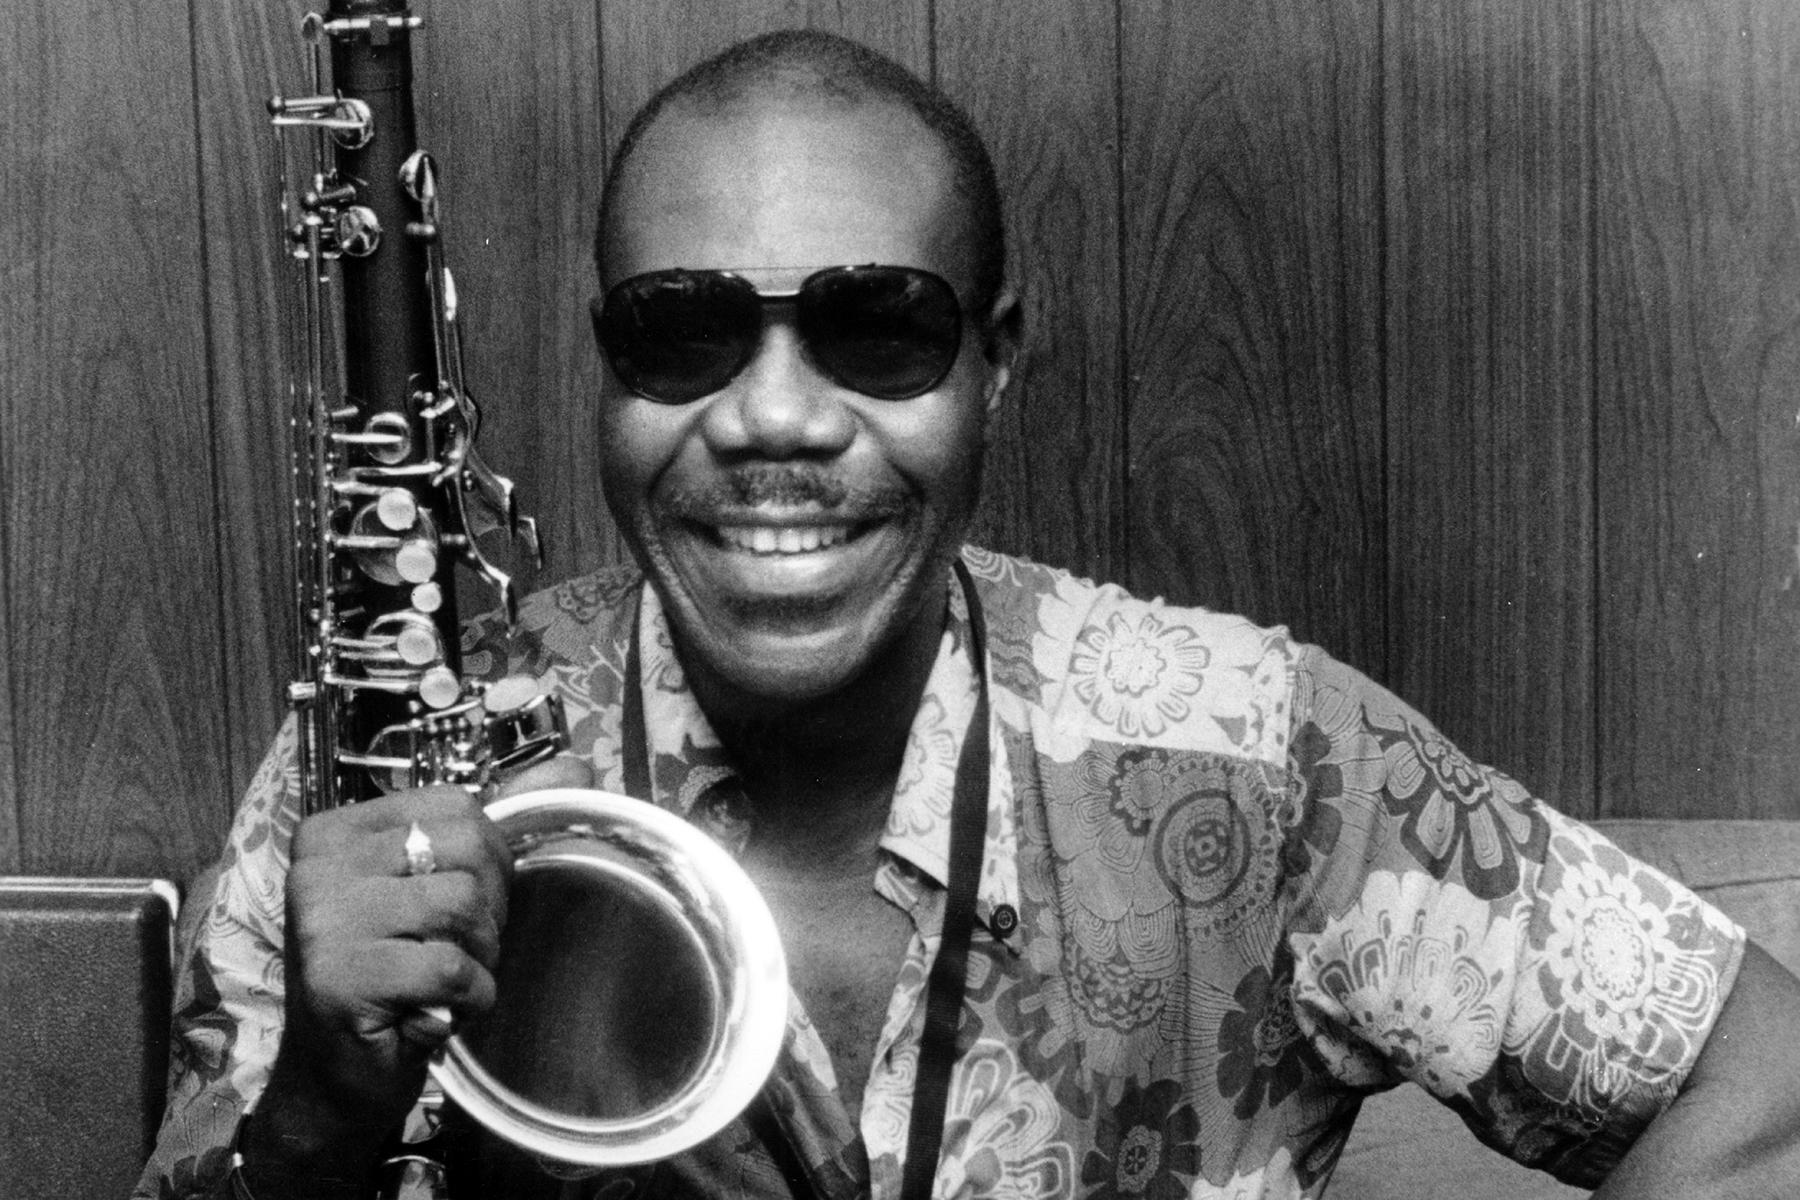 CAMEROONIANS AND THEIR CURIOUS HABIT OF FISHING IN SWIMMING POOLS: THE LEGACY OF MANU DIBANGO